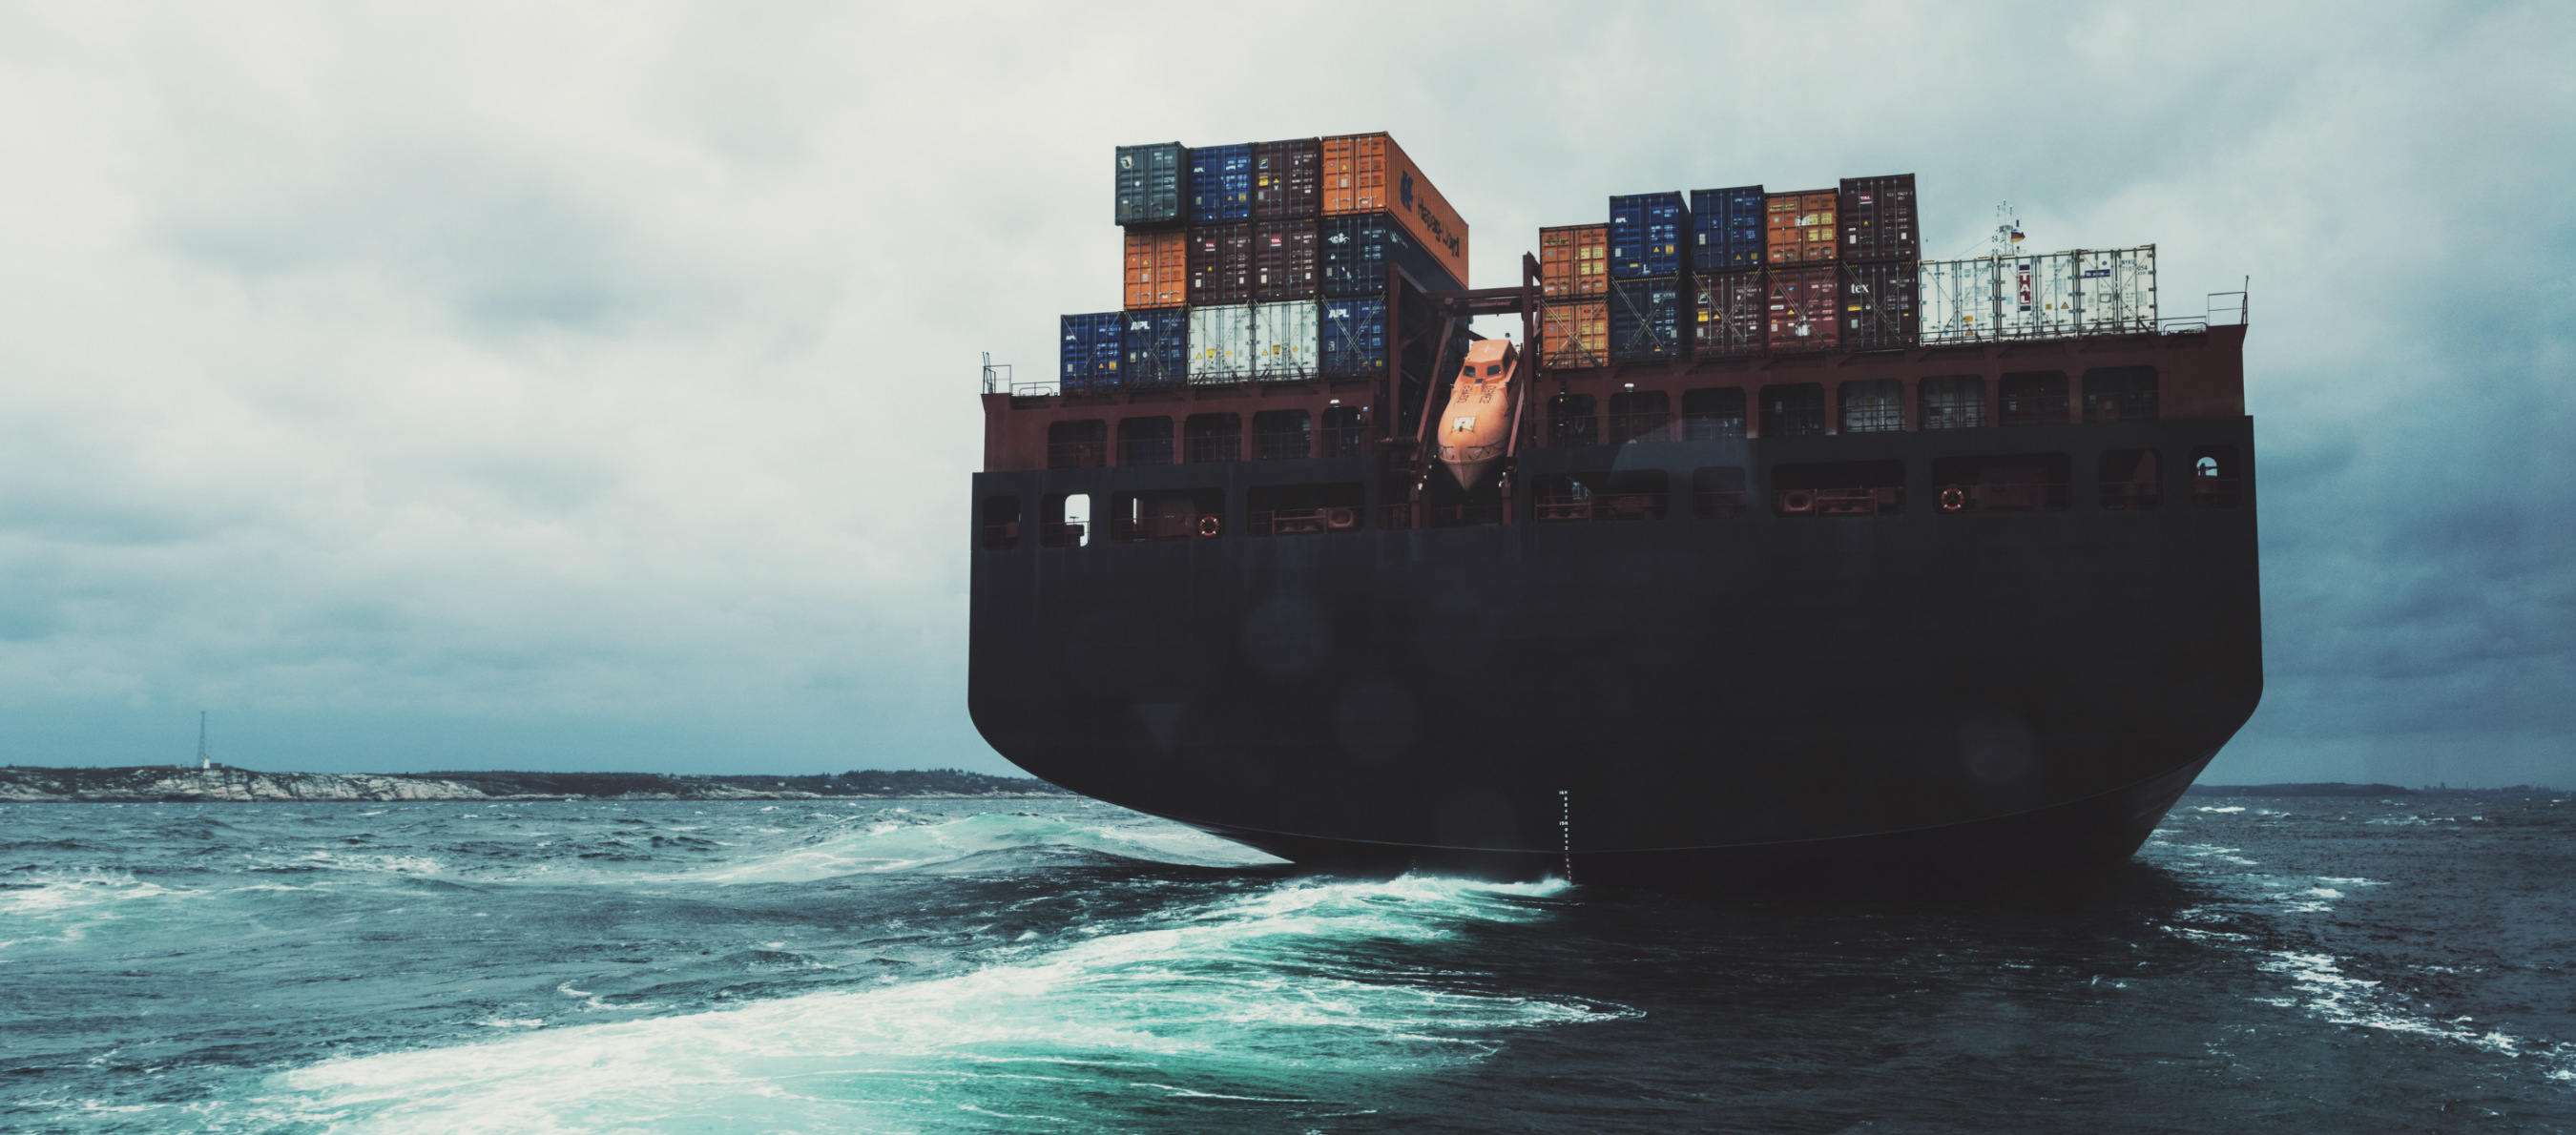 /container-insight-weekly/weekly-feature-articles/coronavirus-rationing-container-capacity